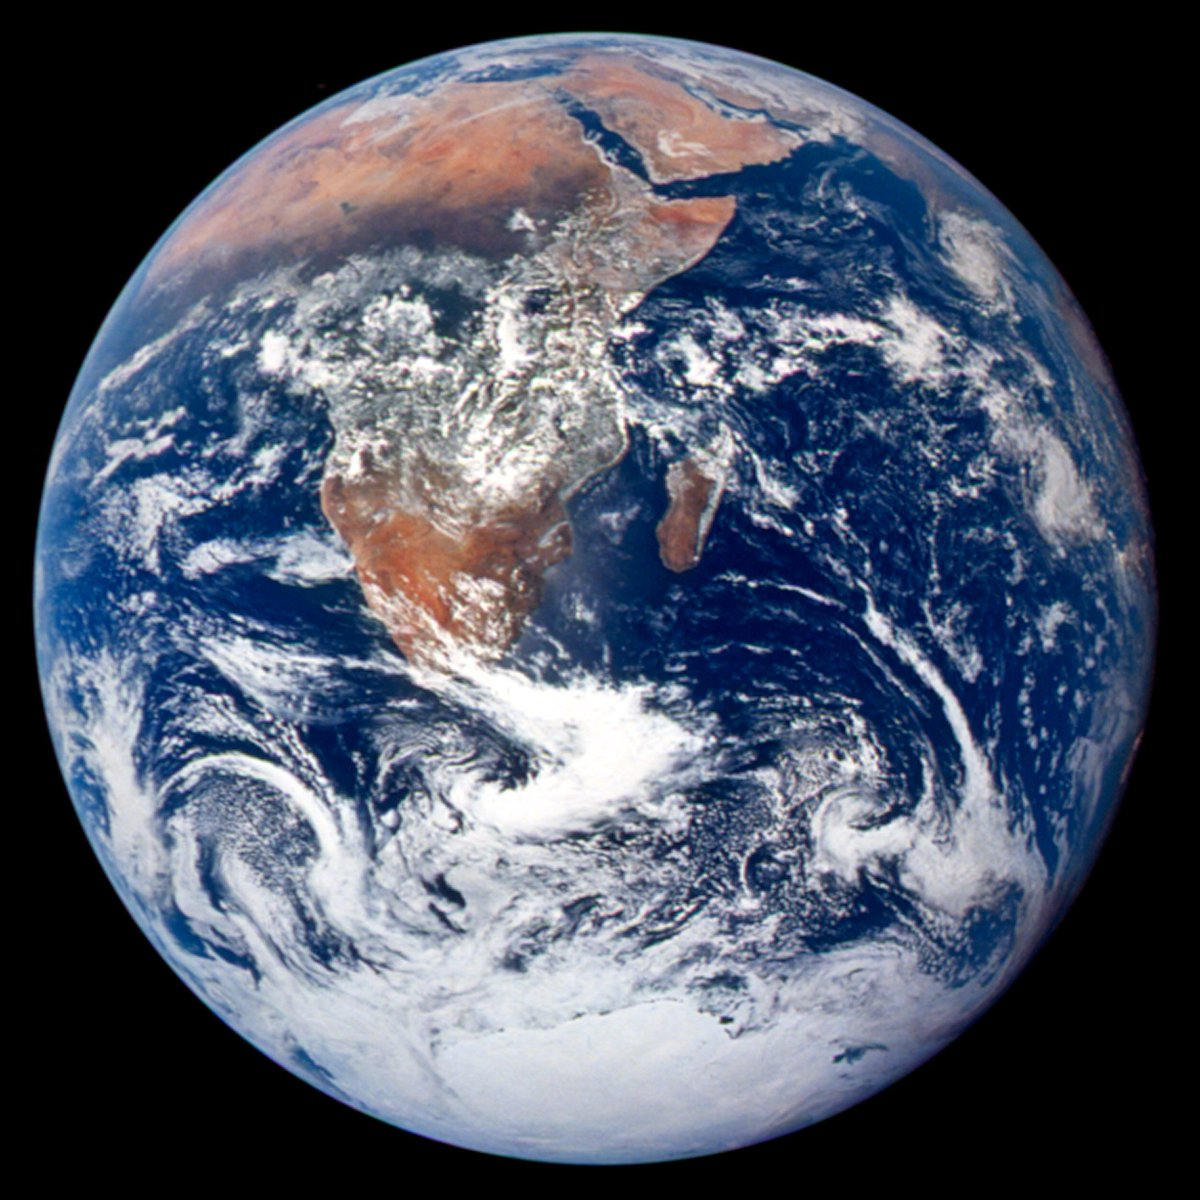 This classic 'Blue Marble' photograph of the Earth was taken 45 years ago today, on December 7, 1972, by the crew of Apollo 17. https://t.co/0tO5zHEofr #bluemarble